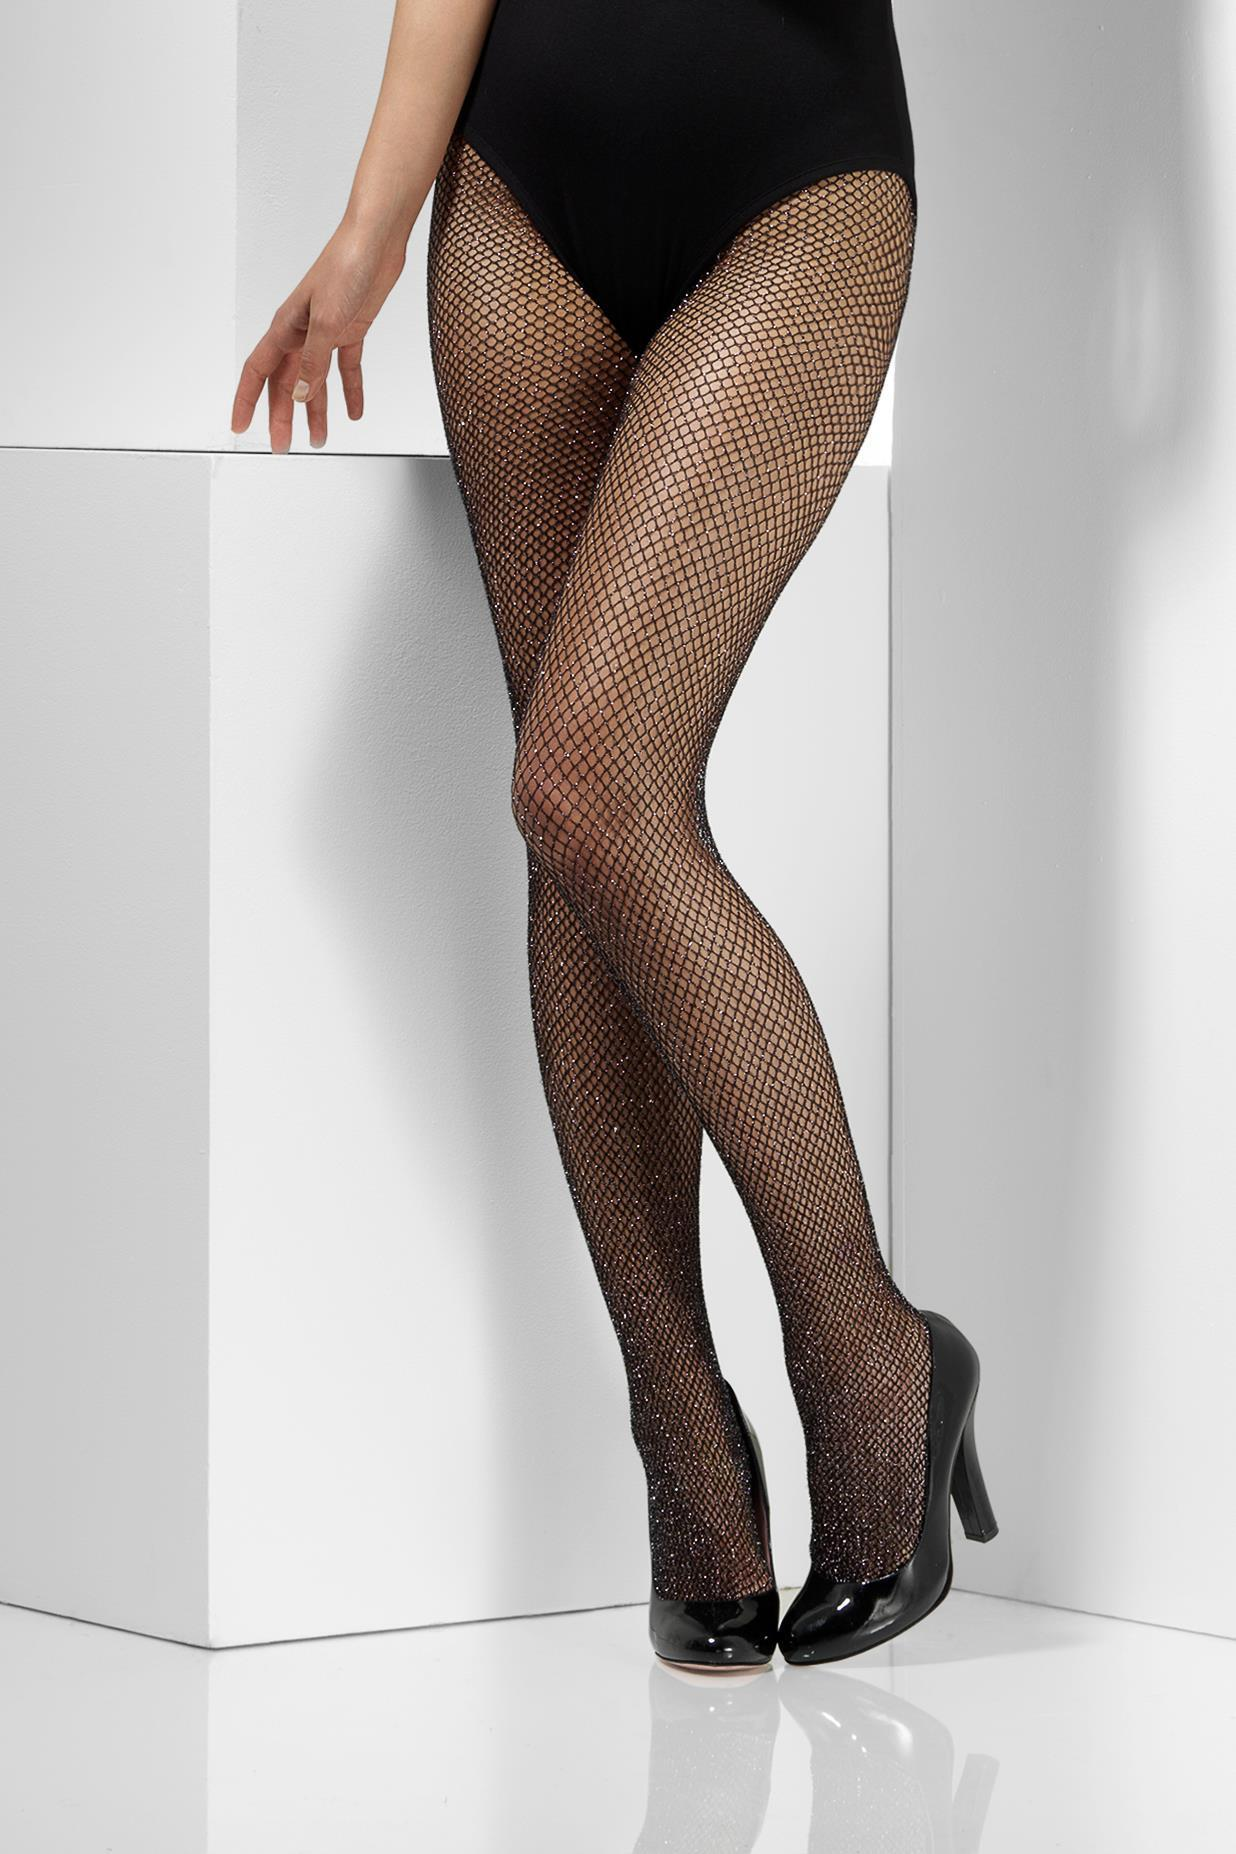 Glitter Fishnet Tights Black & Silver.